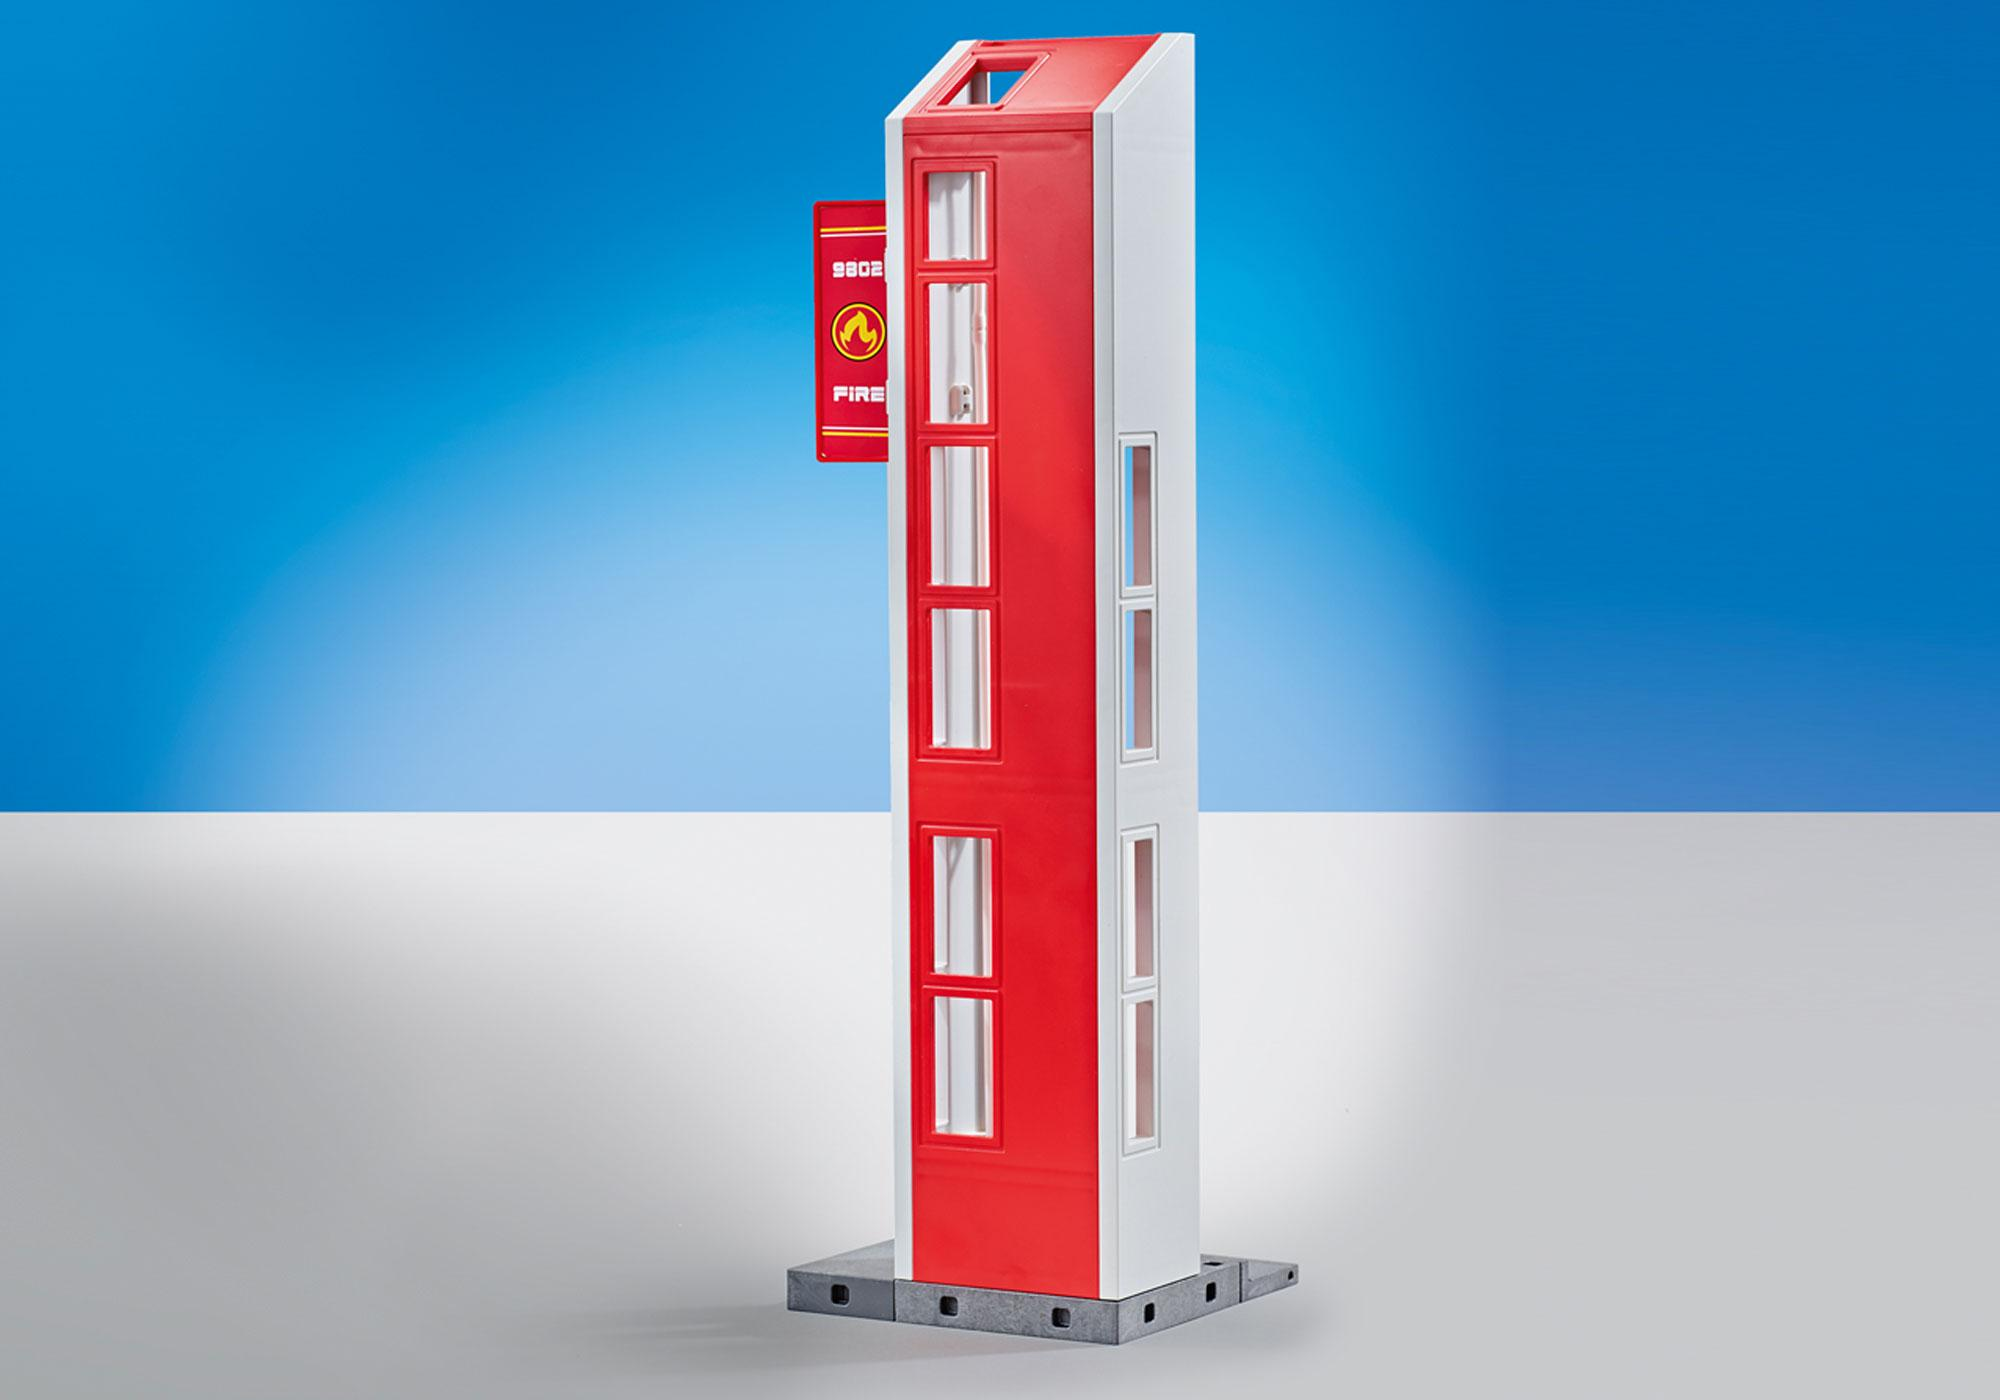 http://media.playmobil.com/i/playmobil/9802_product_detail/Hose Tower for Fire Station with Alarm (9462)